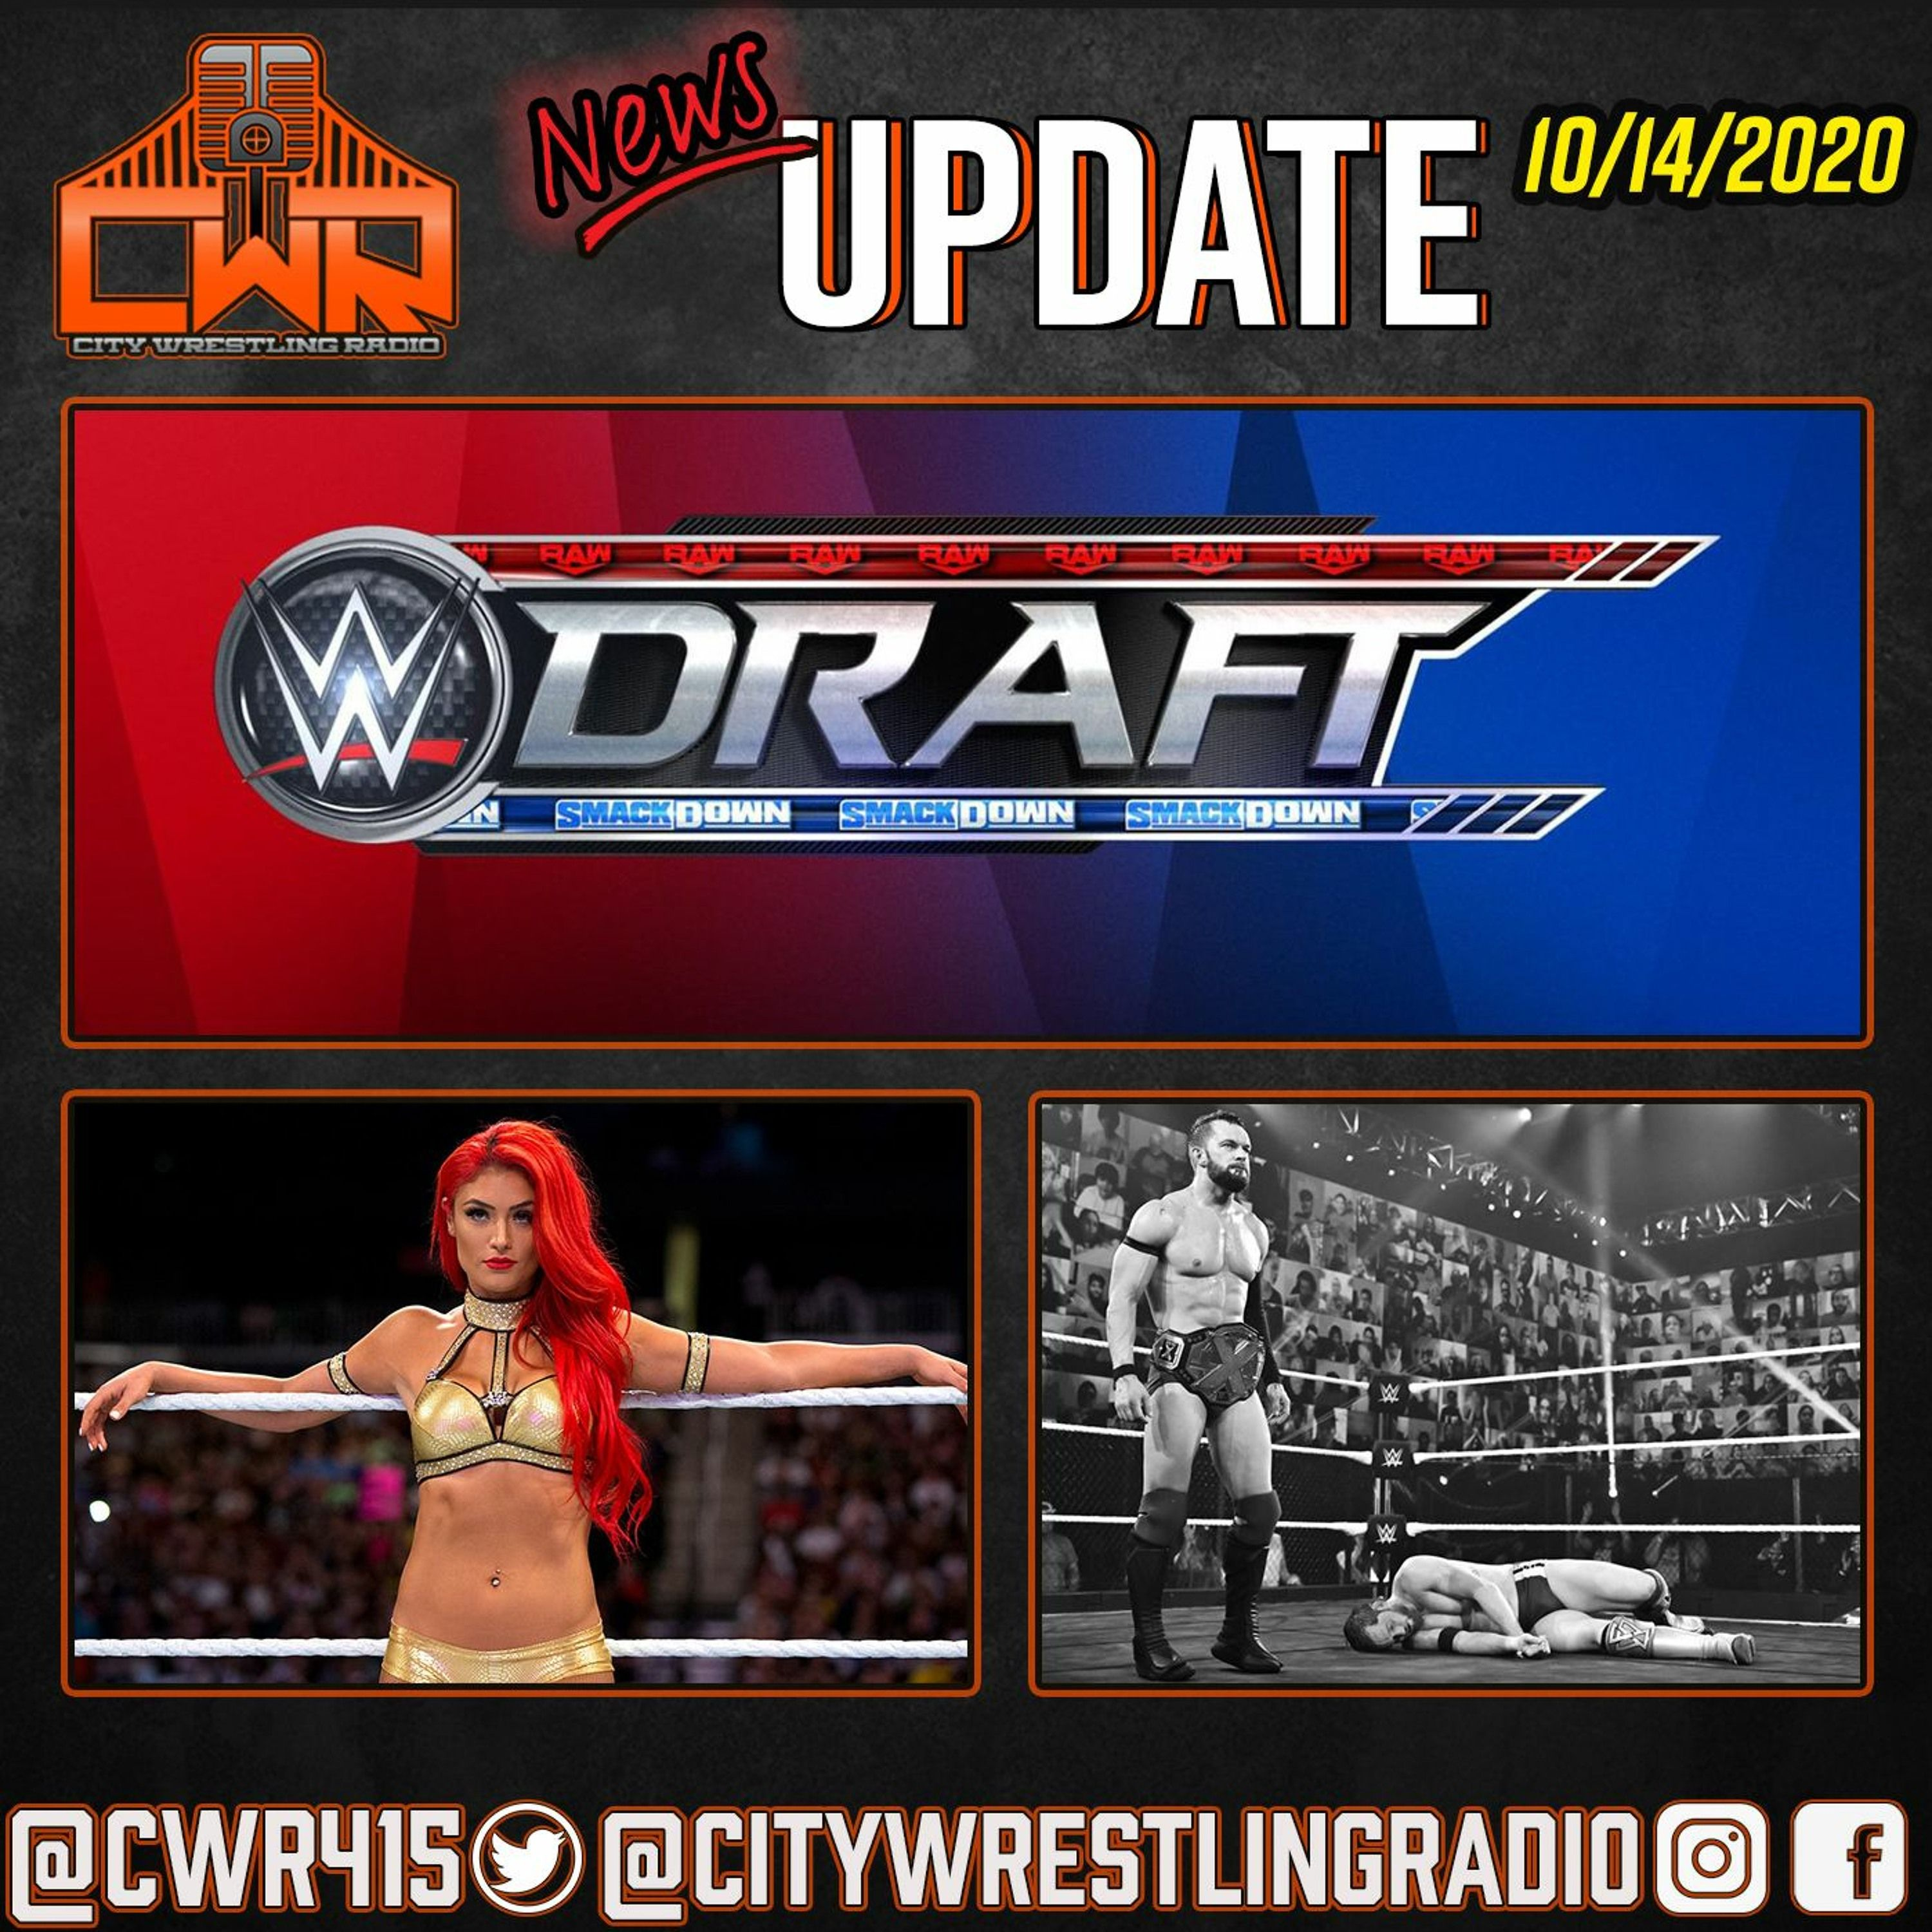 WWE Draft, Joey Ryan Update, Finn Balor : CWR News Update | City Wrestling Radio |